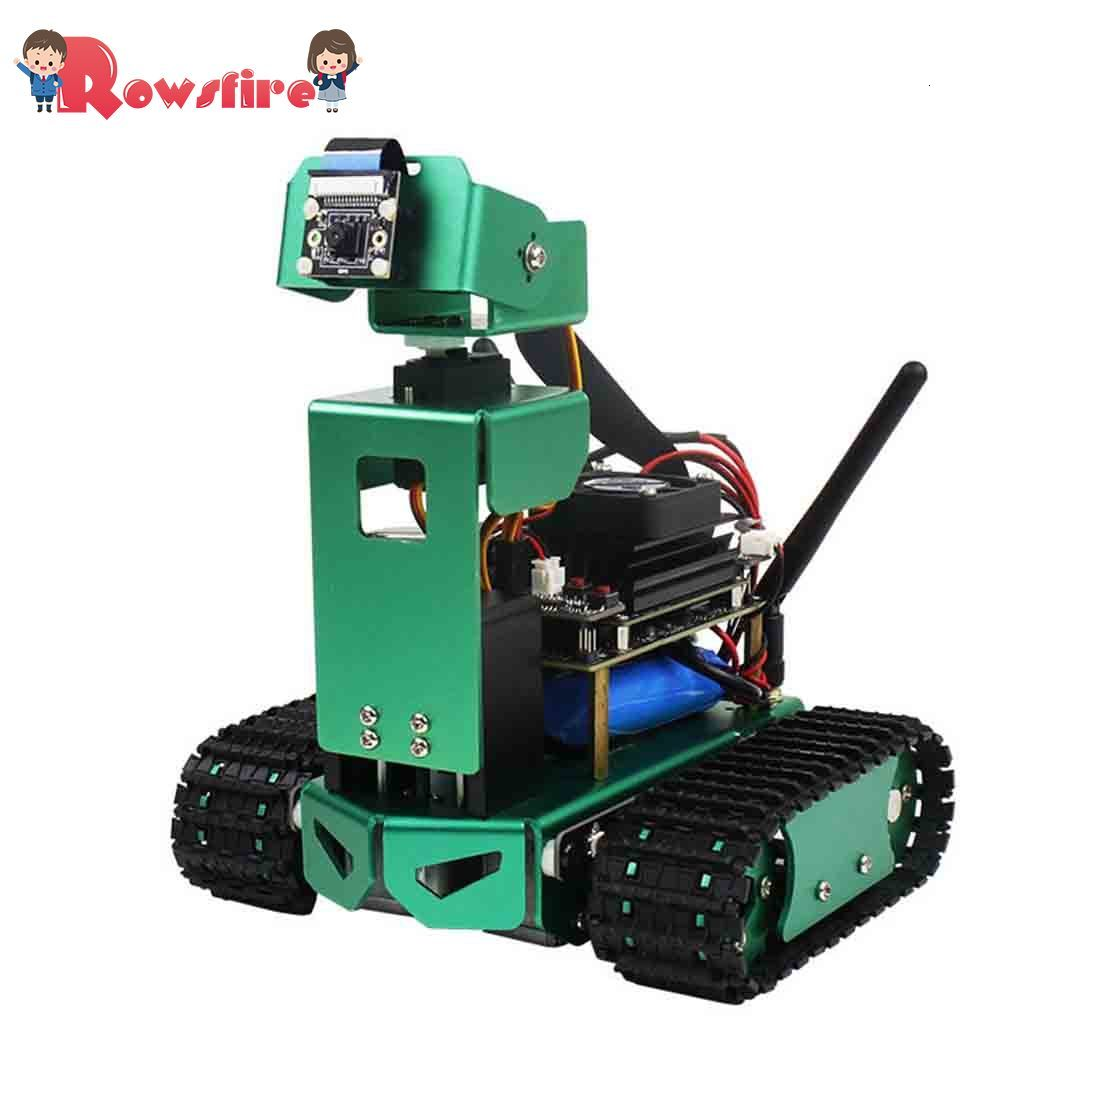 Artificial Intelligence Car DIY 3DOF Robot Car Kit With/Without Development Board For Jetson Nano (Adjustable Height)